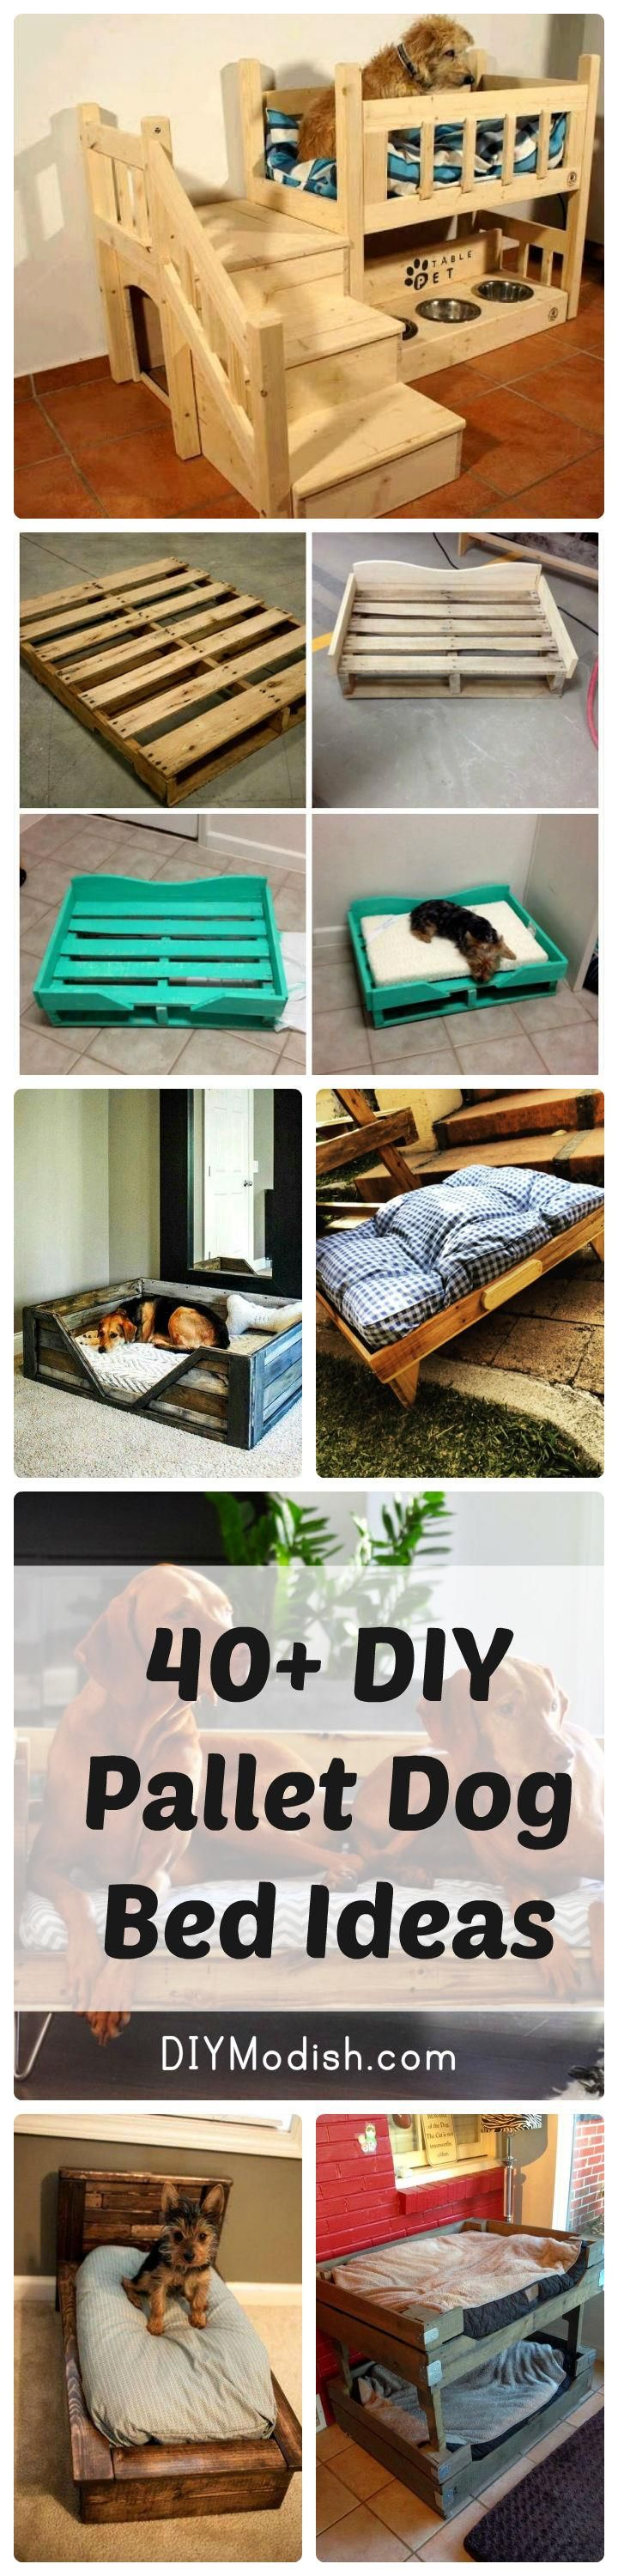 40+ DIY Pallet Dog Bed Ideas - Old Door Panels and Pallet Dog House – DIY